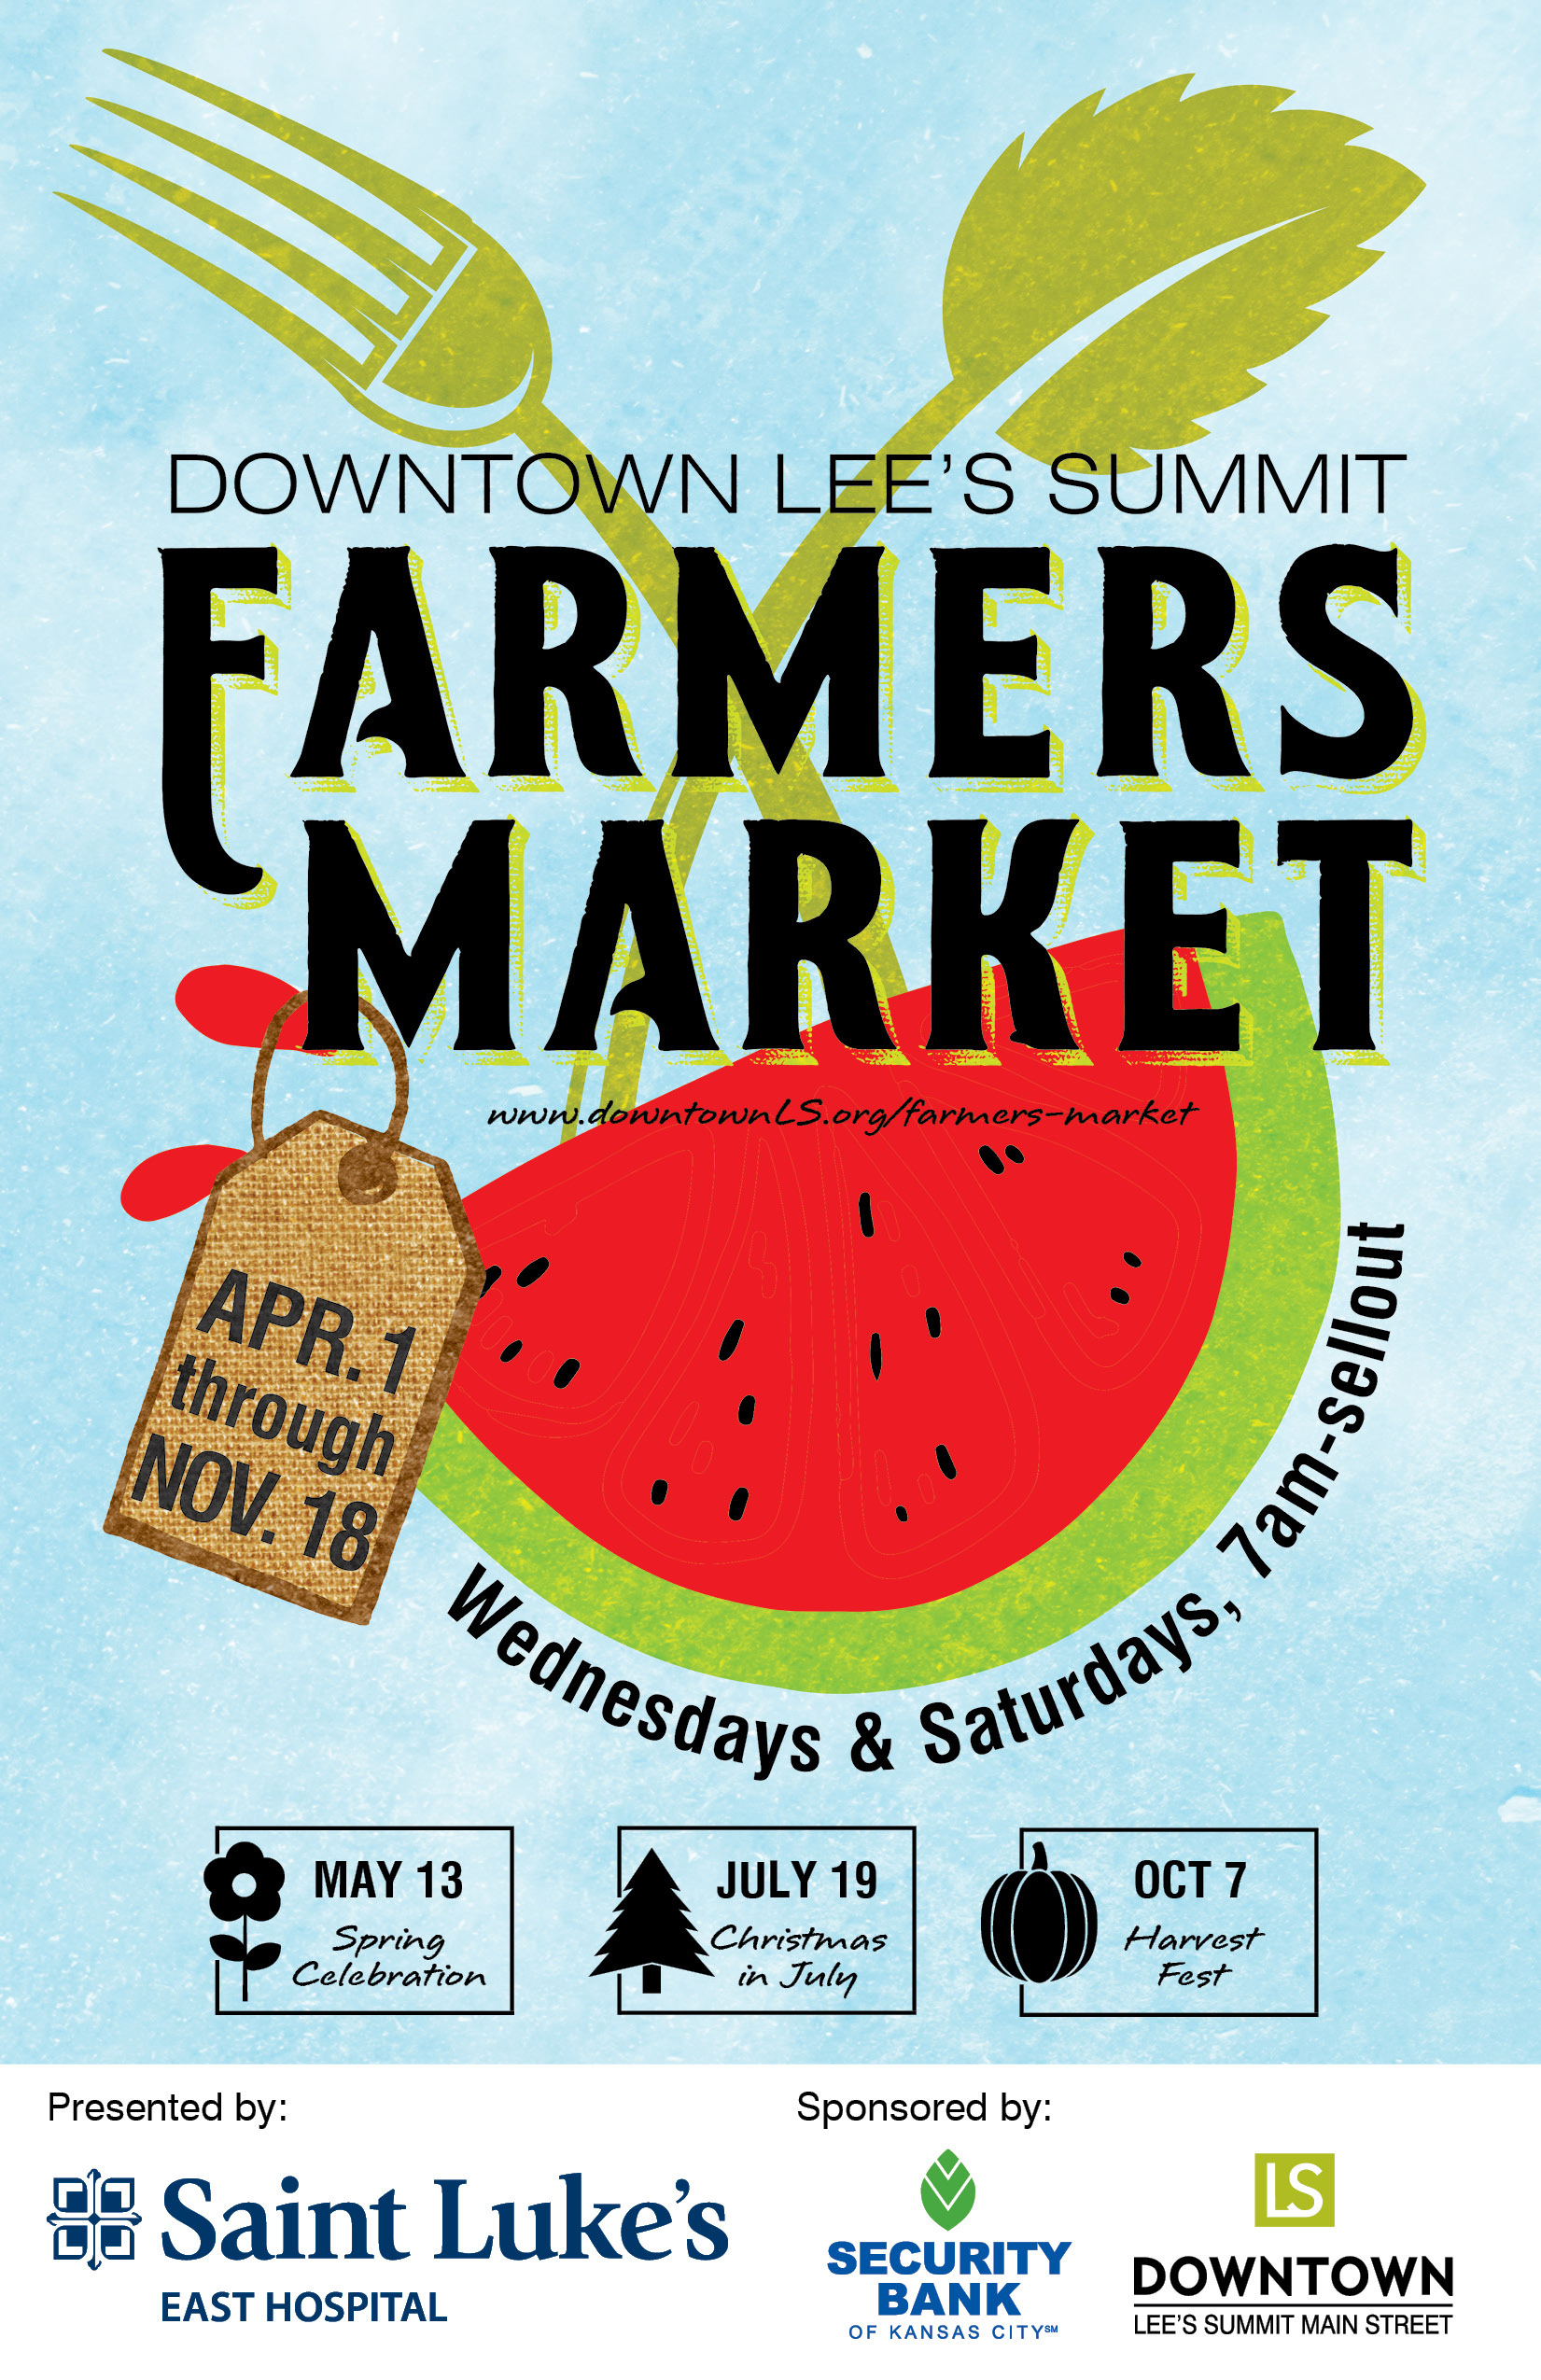 Downtown Lee's Summit Farmers Market Poster 2017